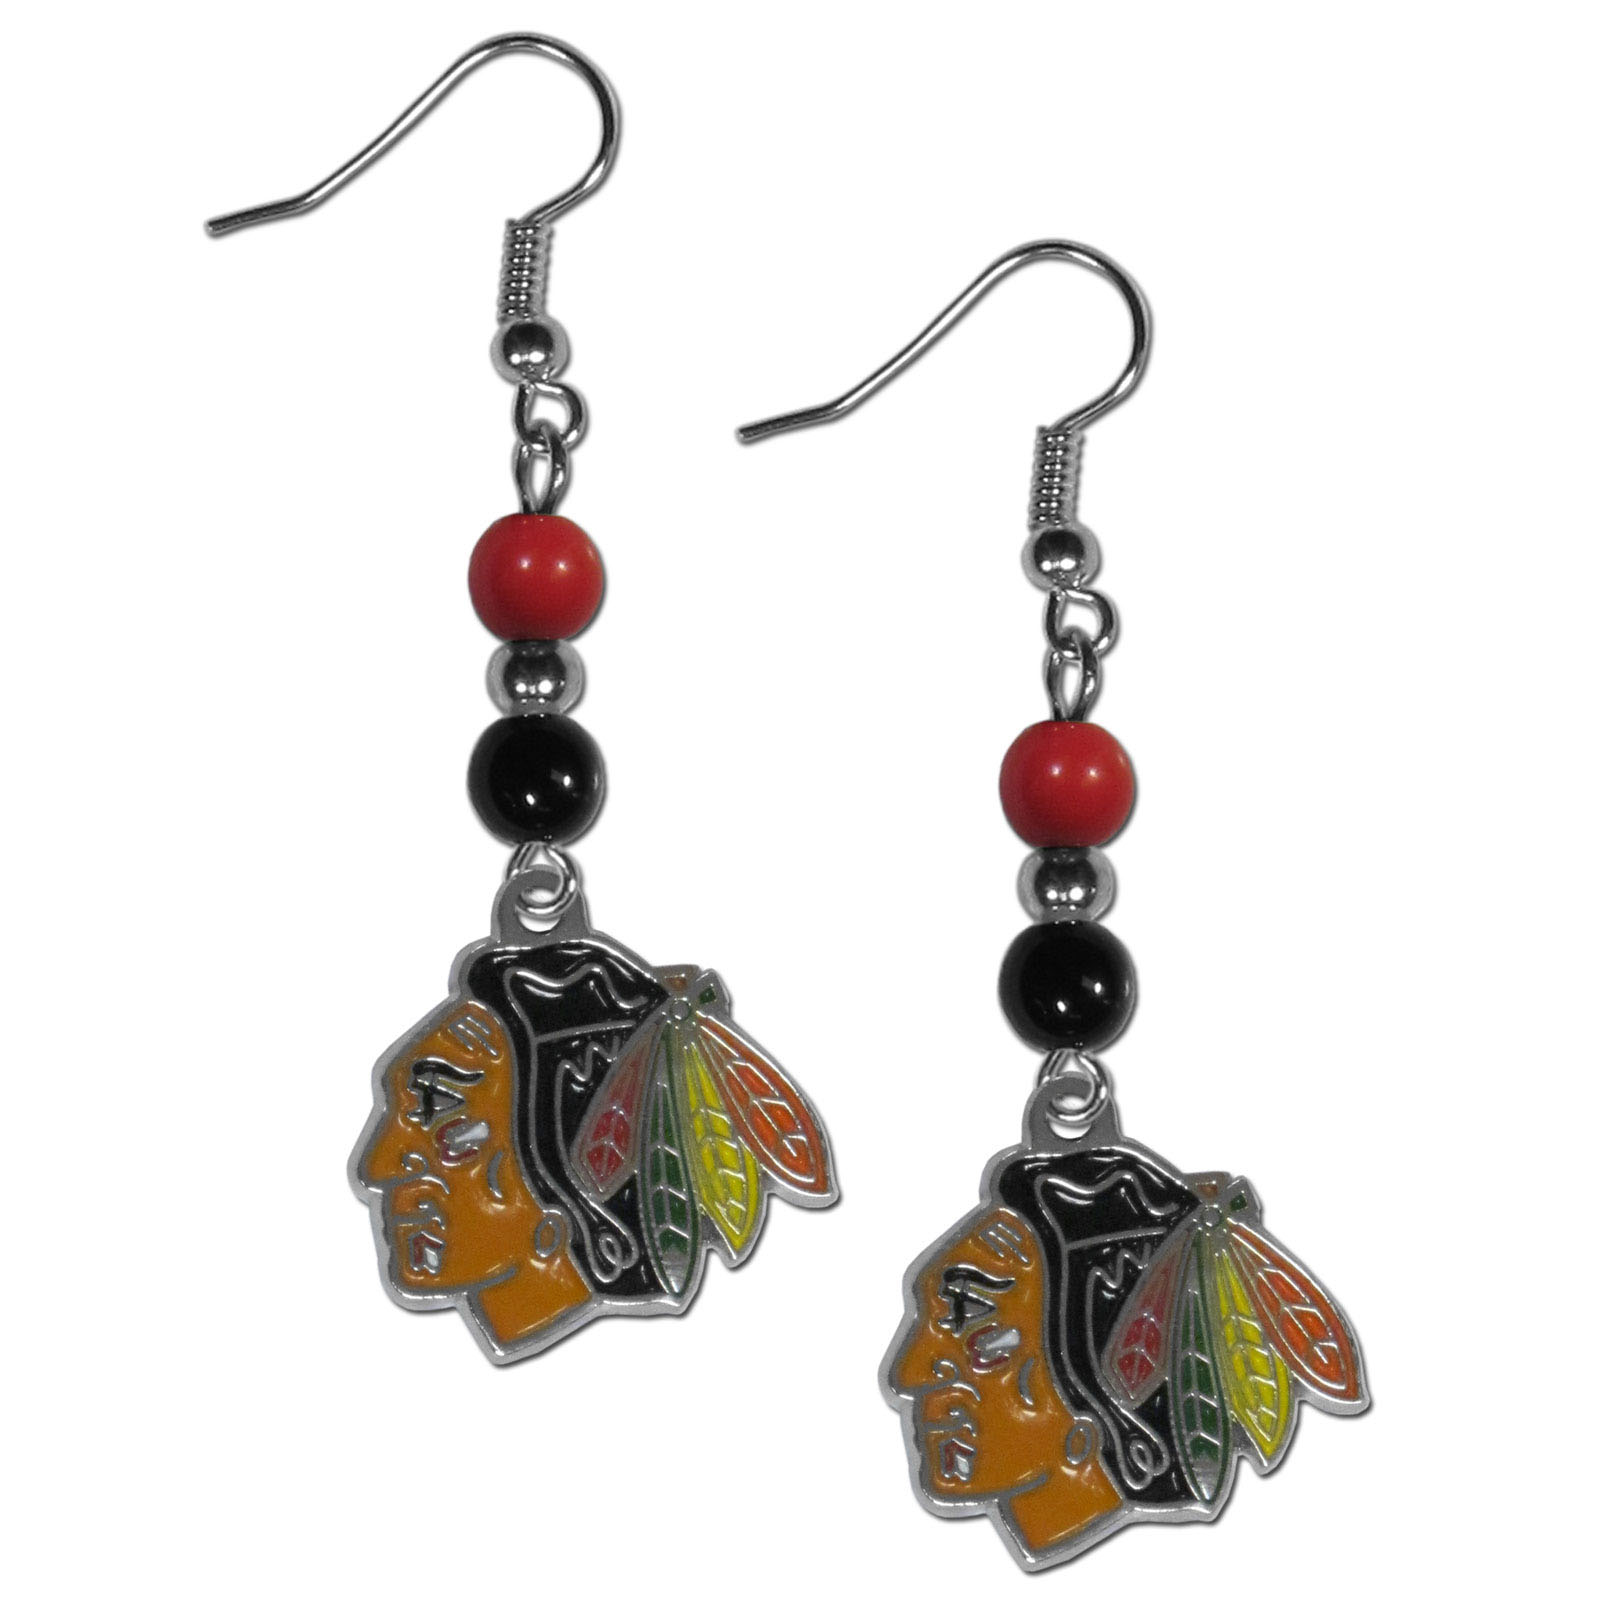 Chicago Blackhawks® Fan Bead Dangle Earrings - Love your team, show it off with our Chicago Blackhawks® bead dangle earrings! These super cute earrings hang approximately 2 inches and features 2 team colored beads and a high polish team charm. A must have for game day!